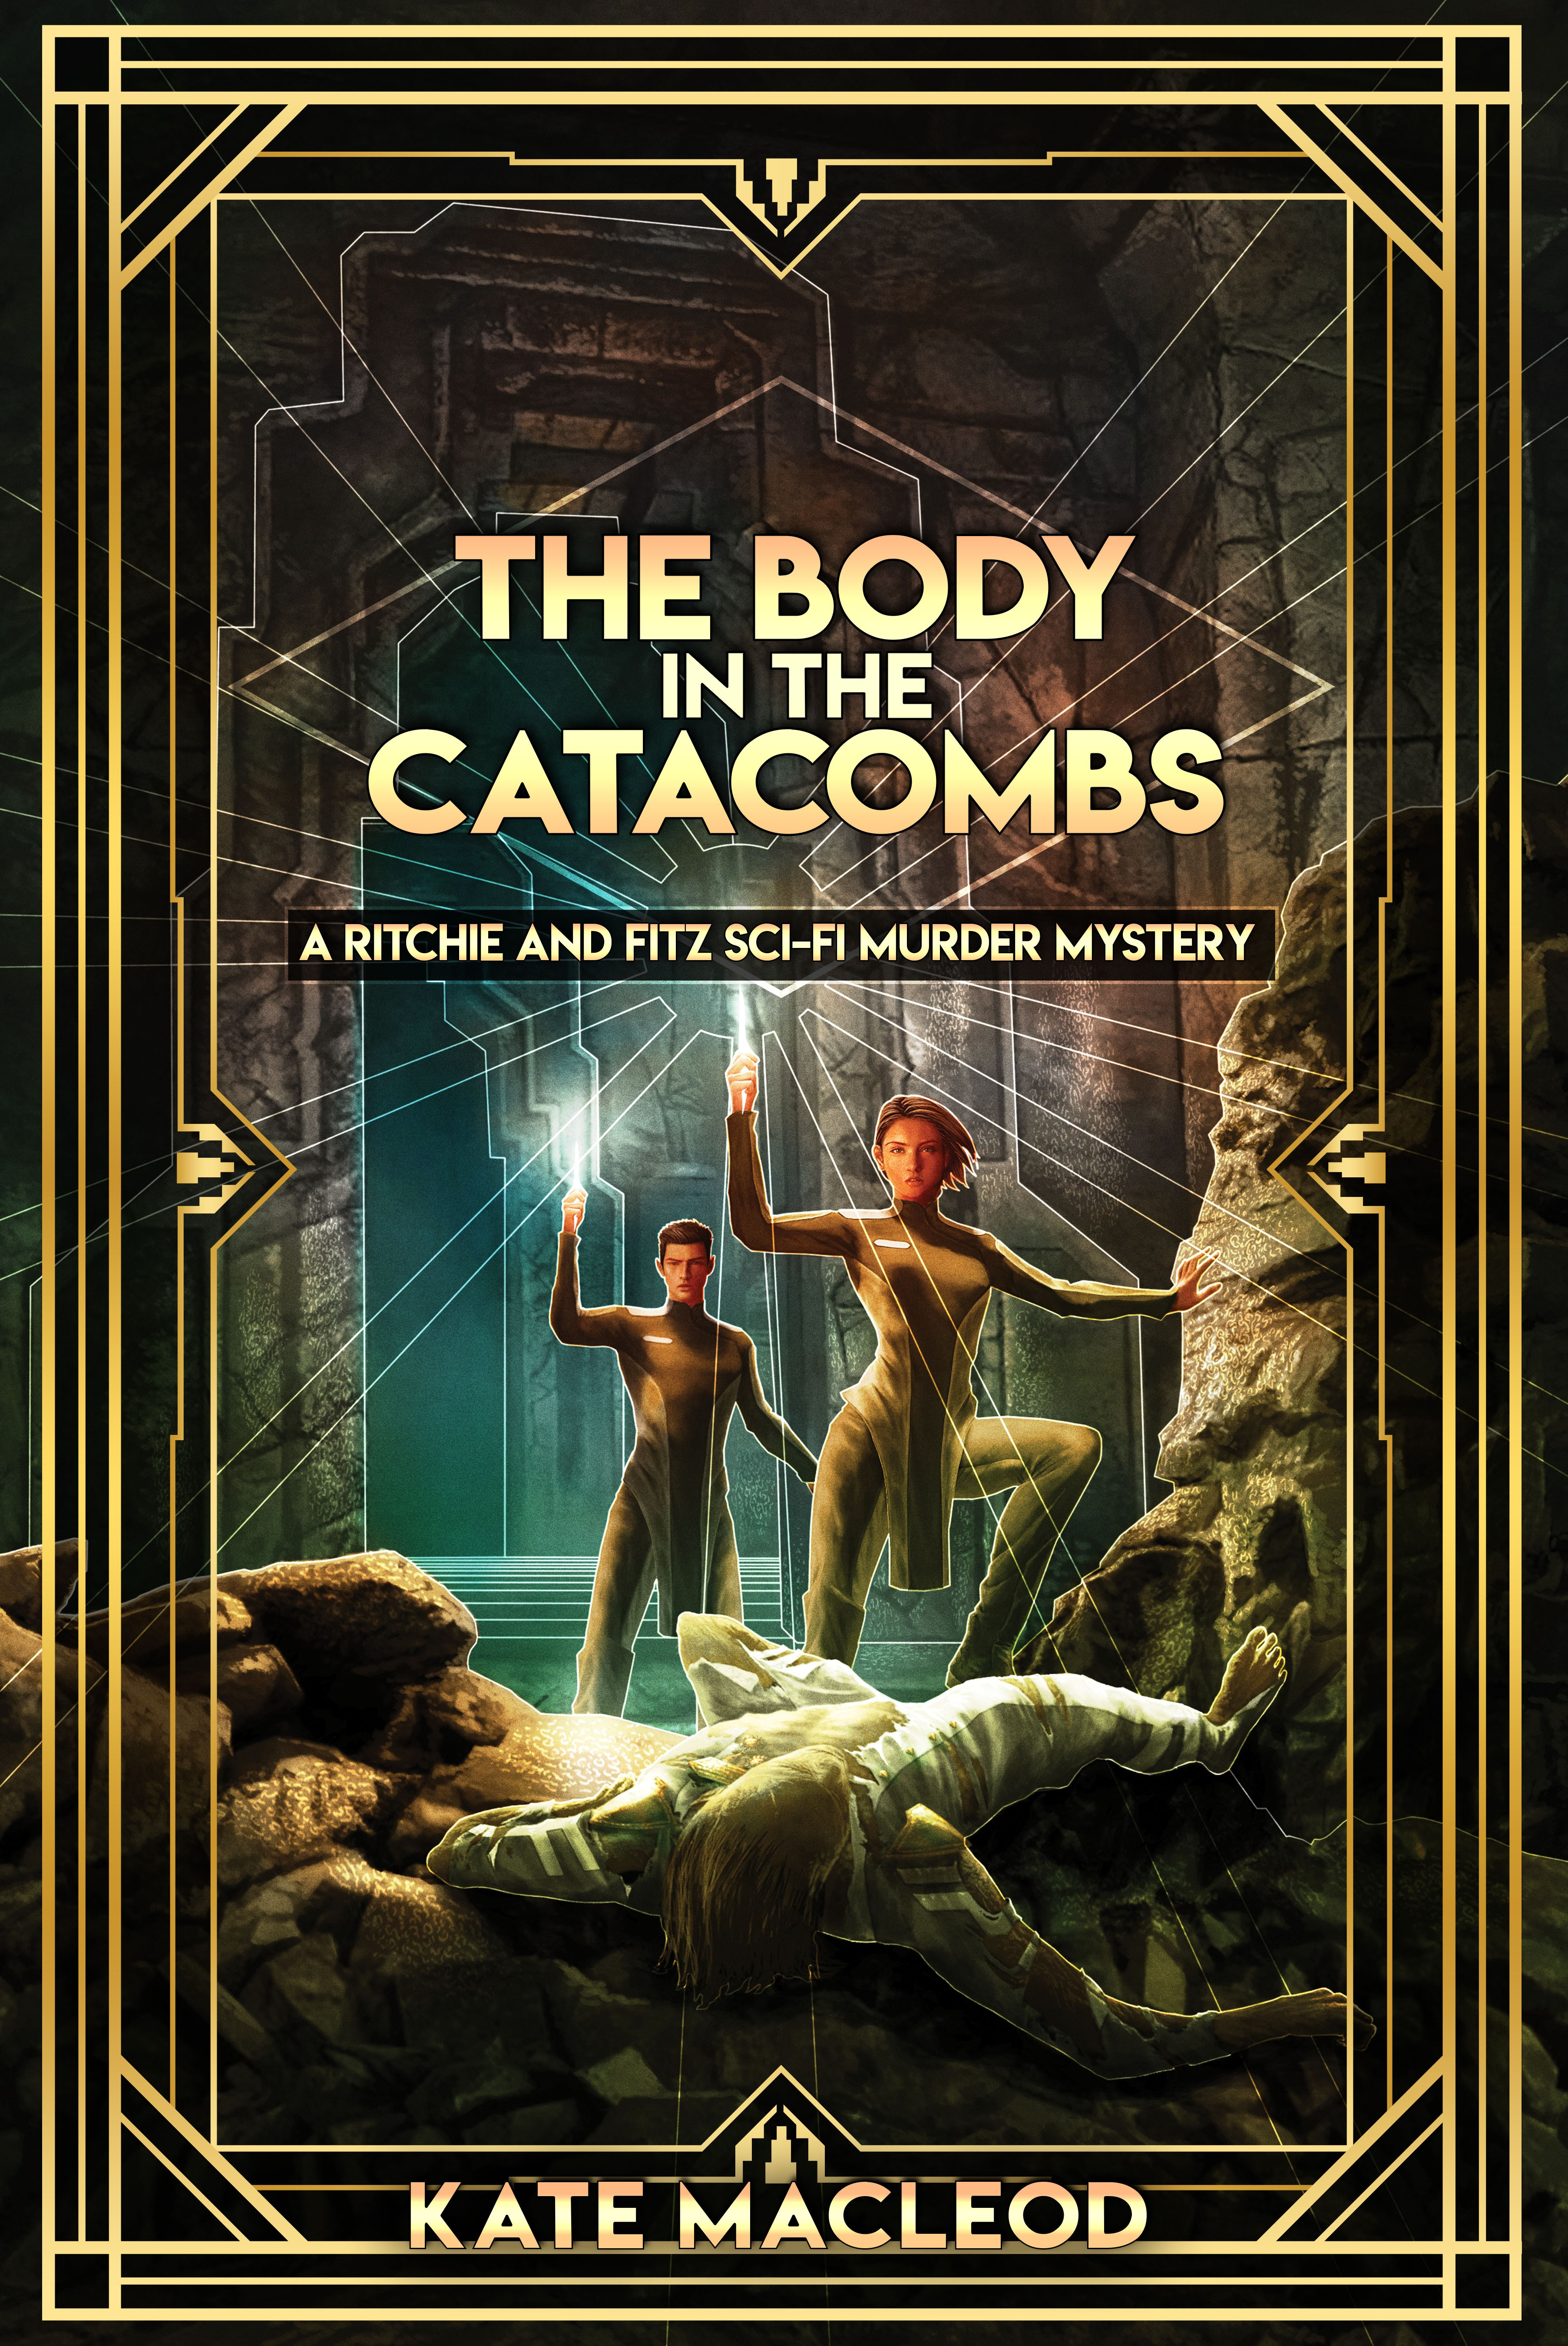 The Body in the Catacombs